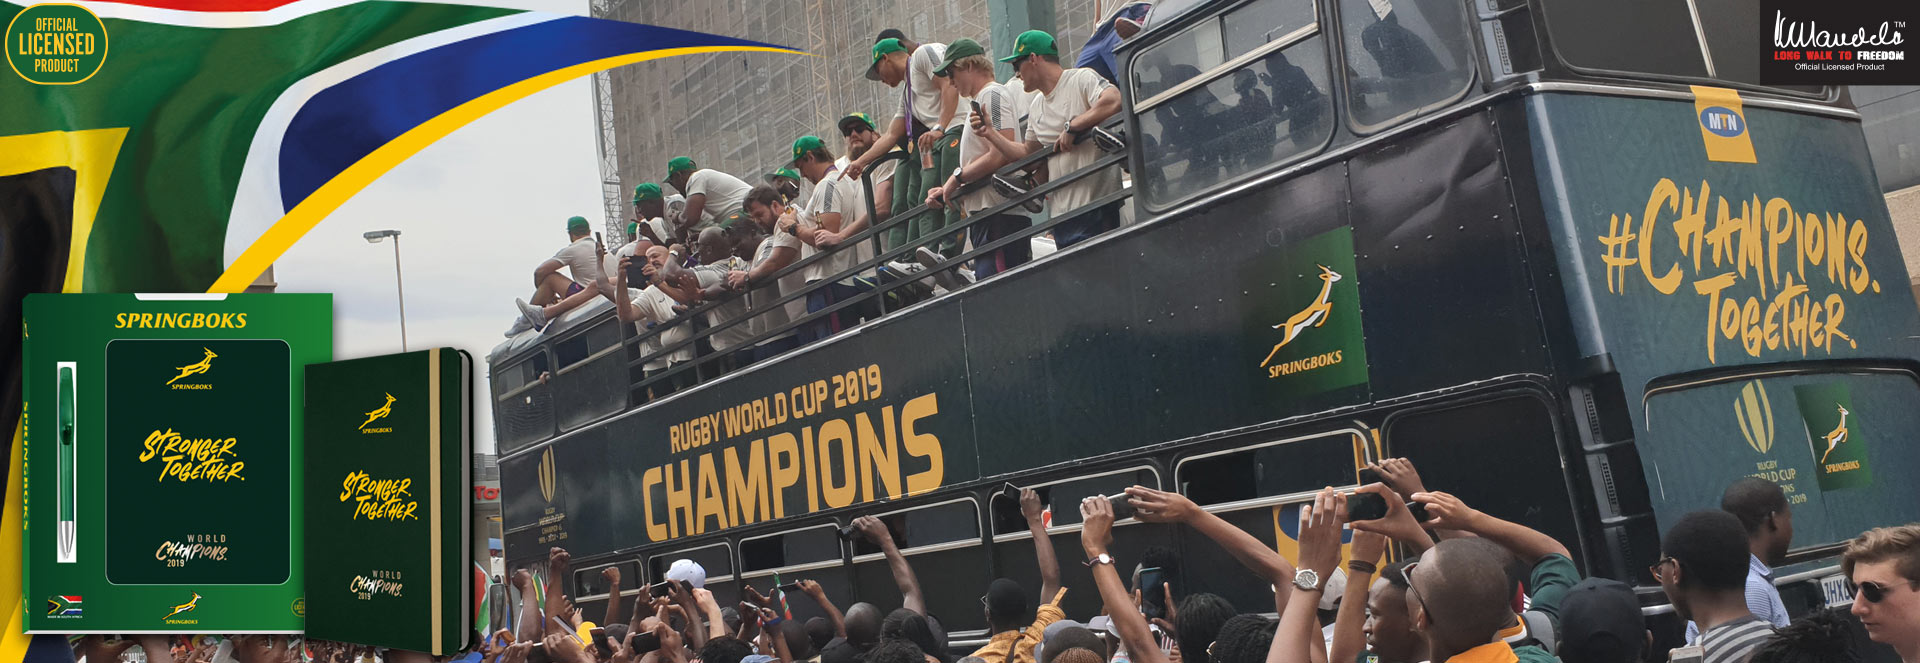 Springboks Champions Notebook and Gift Set